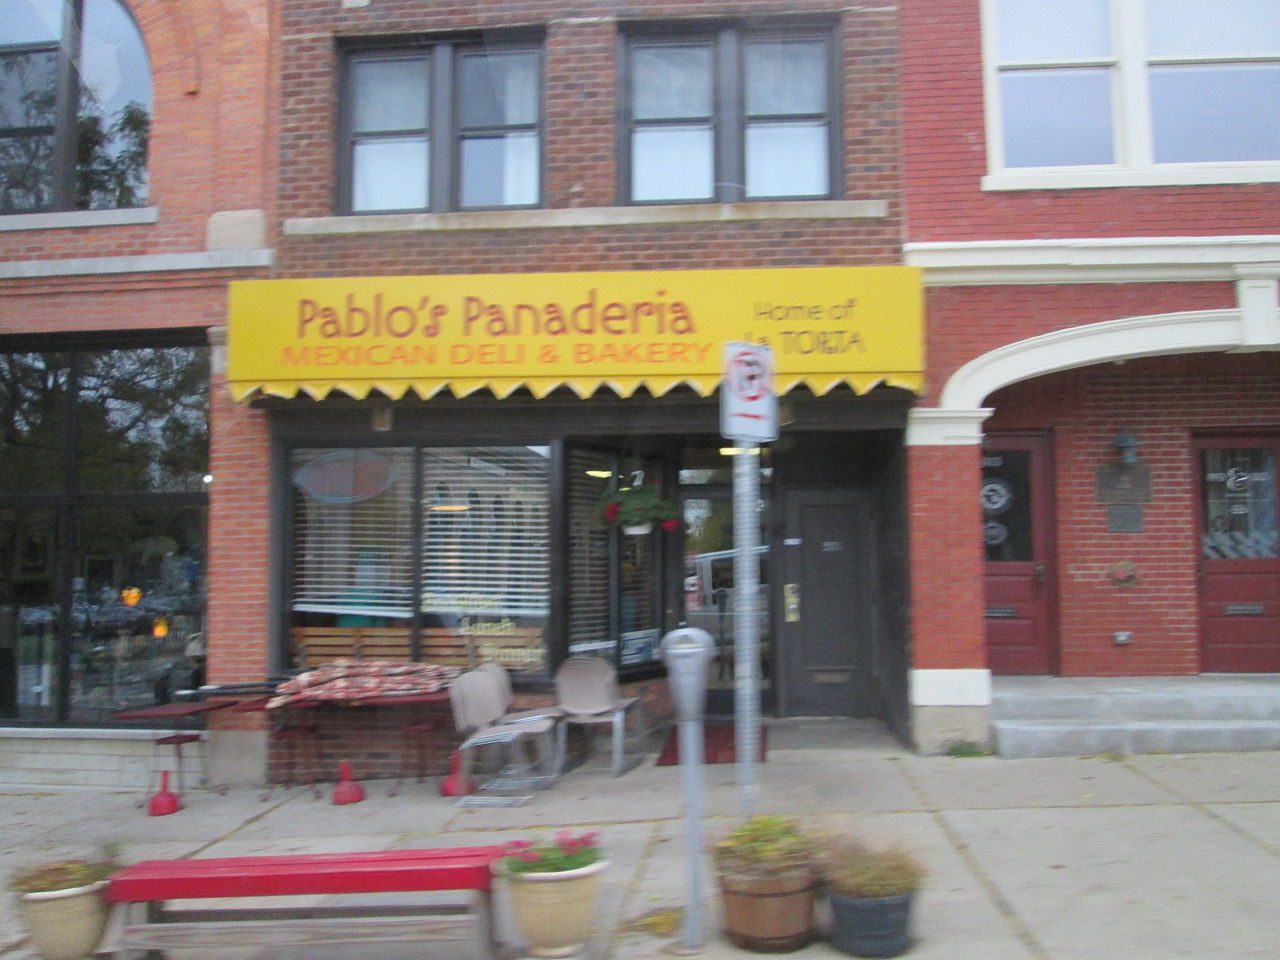 Pablo's Panaderia | © Infrogmation of New Orleans/WikiCommons